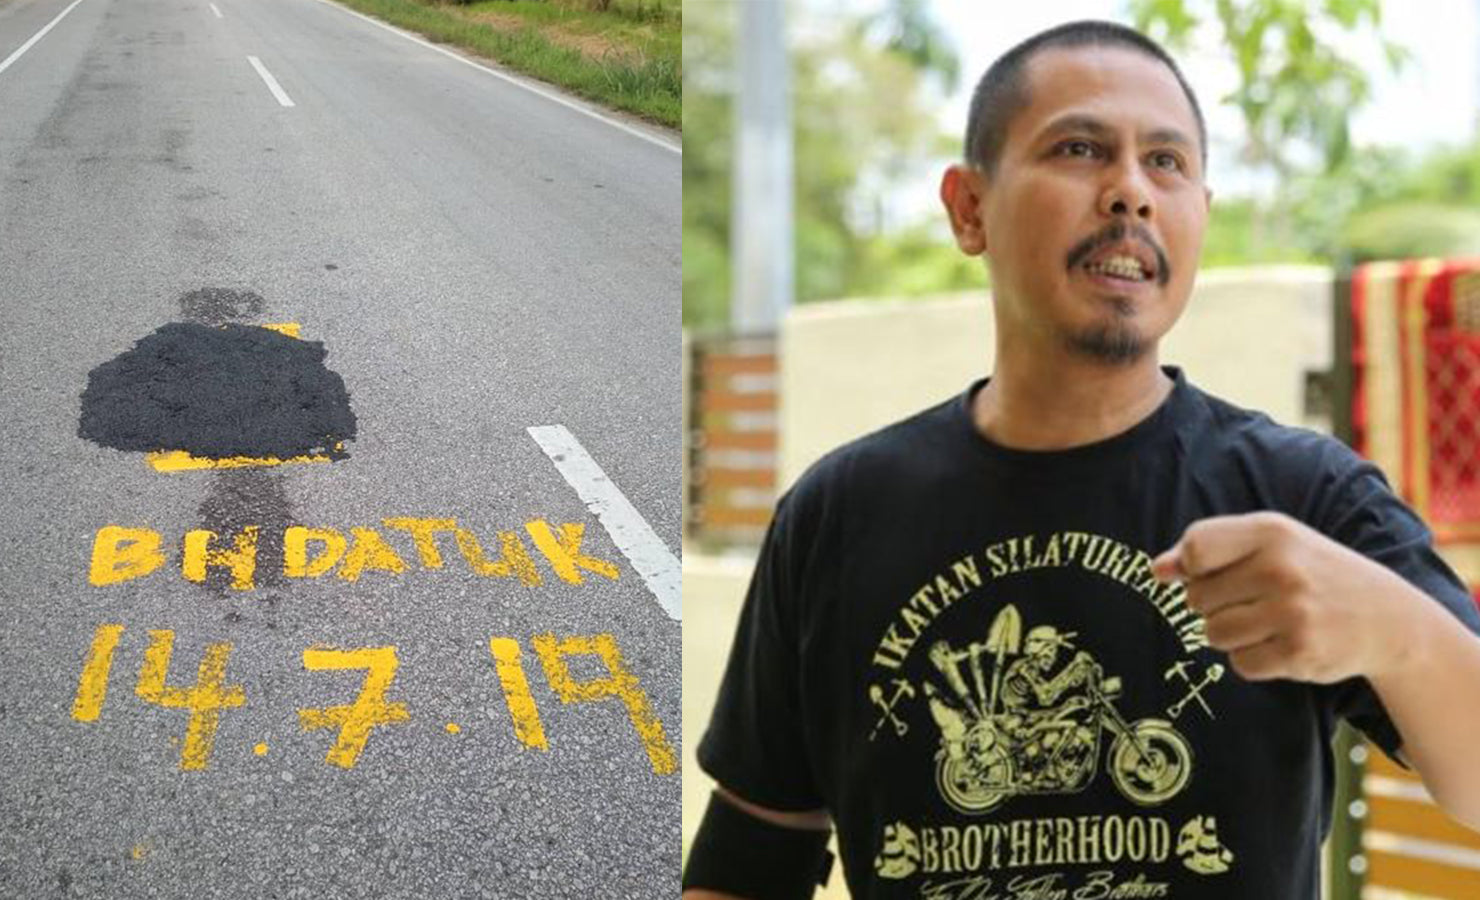 bloomthis-malaysian-things-you-didnt-know-2021-08-BH-pothole